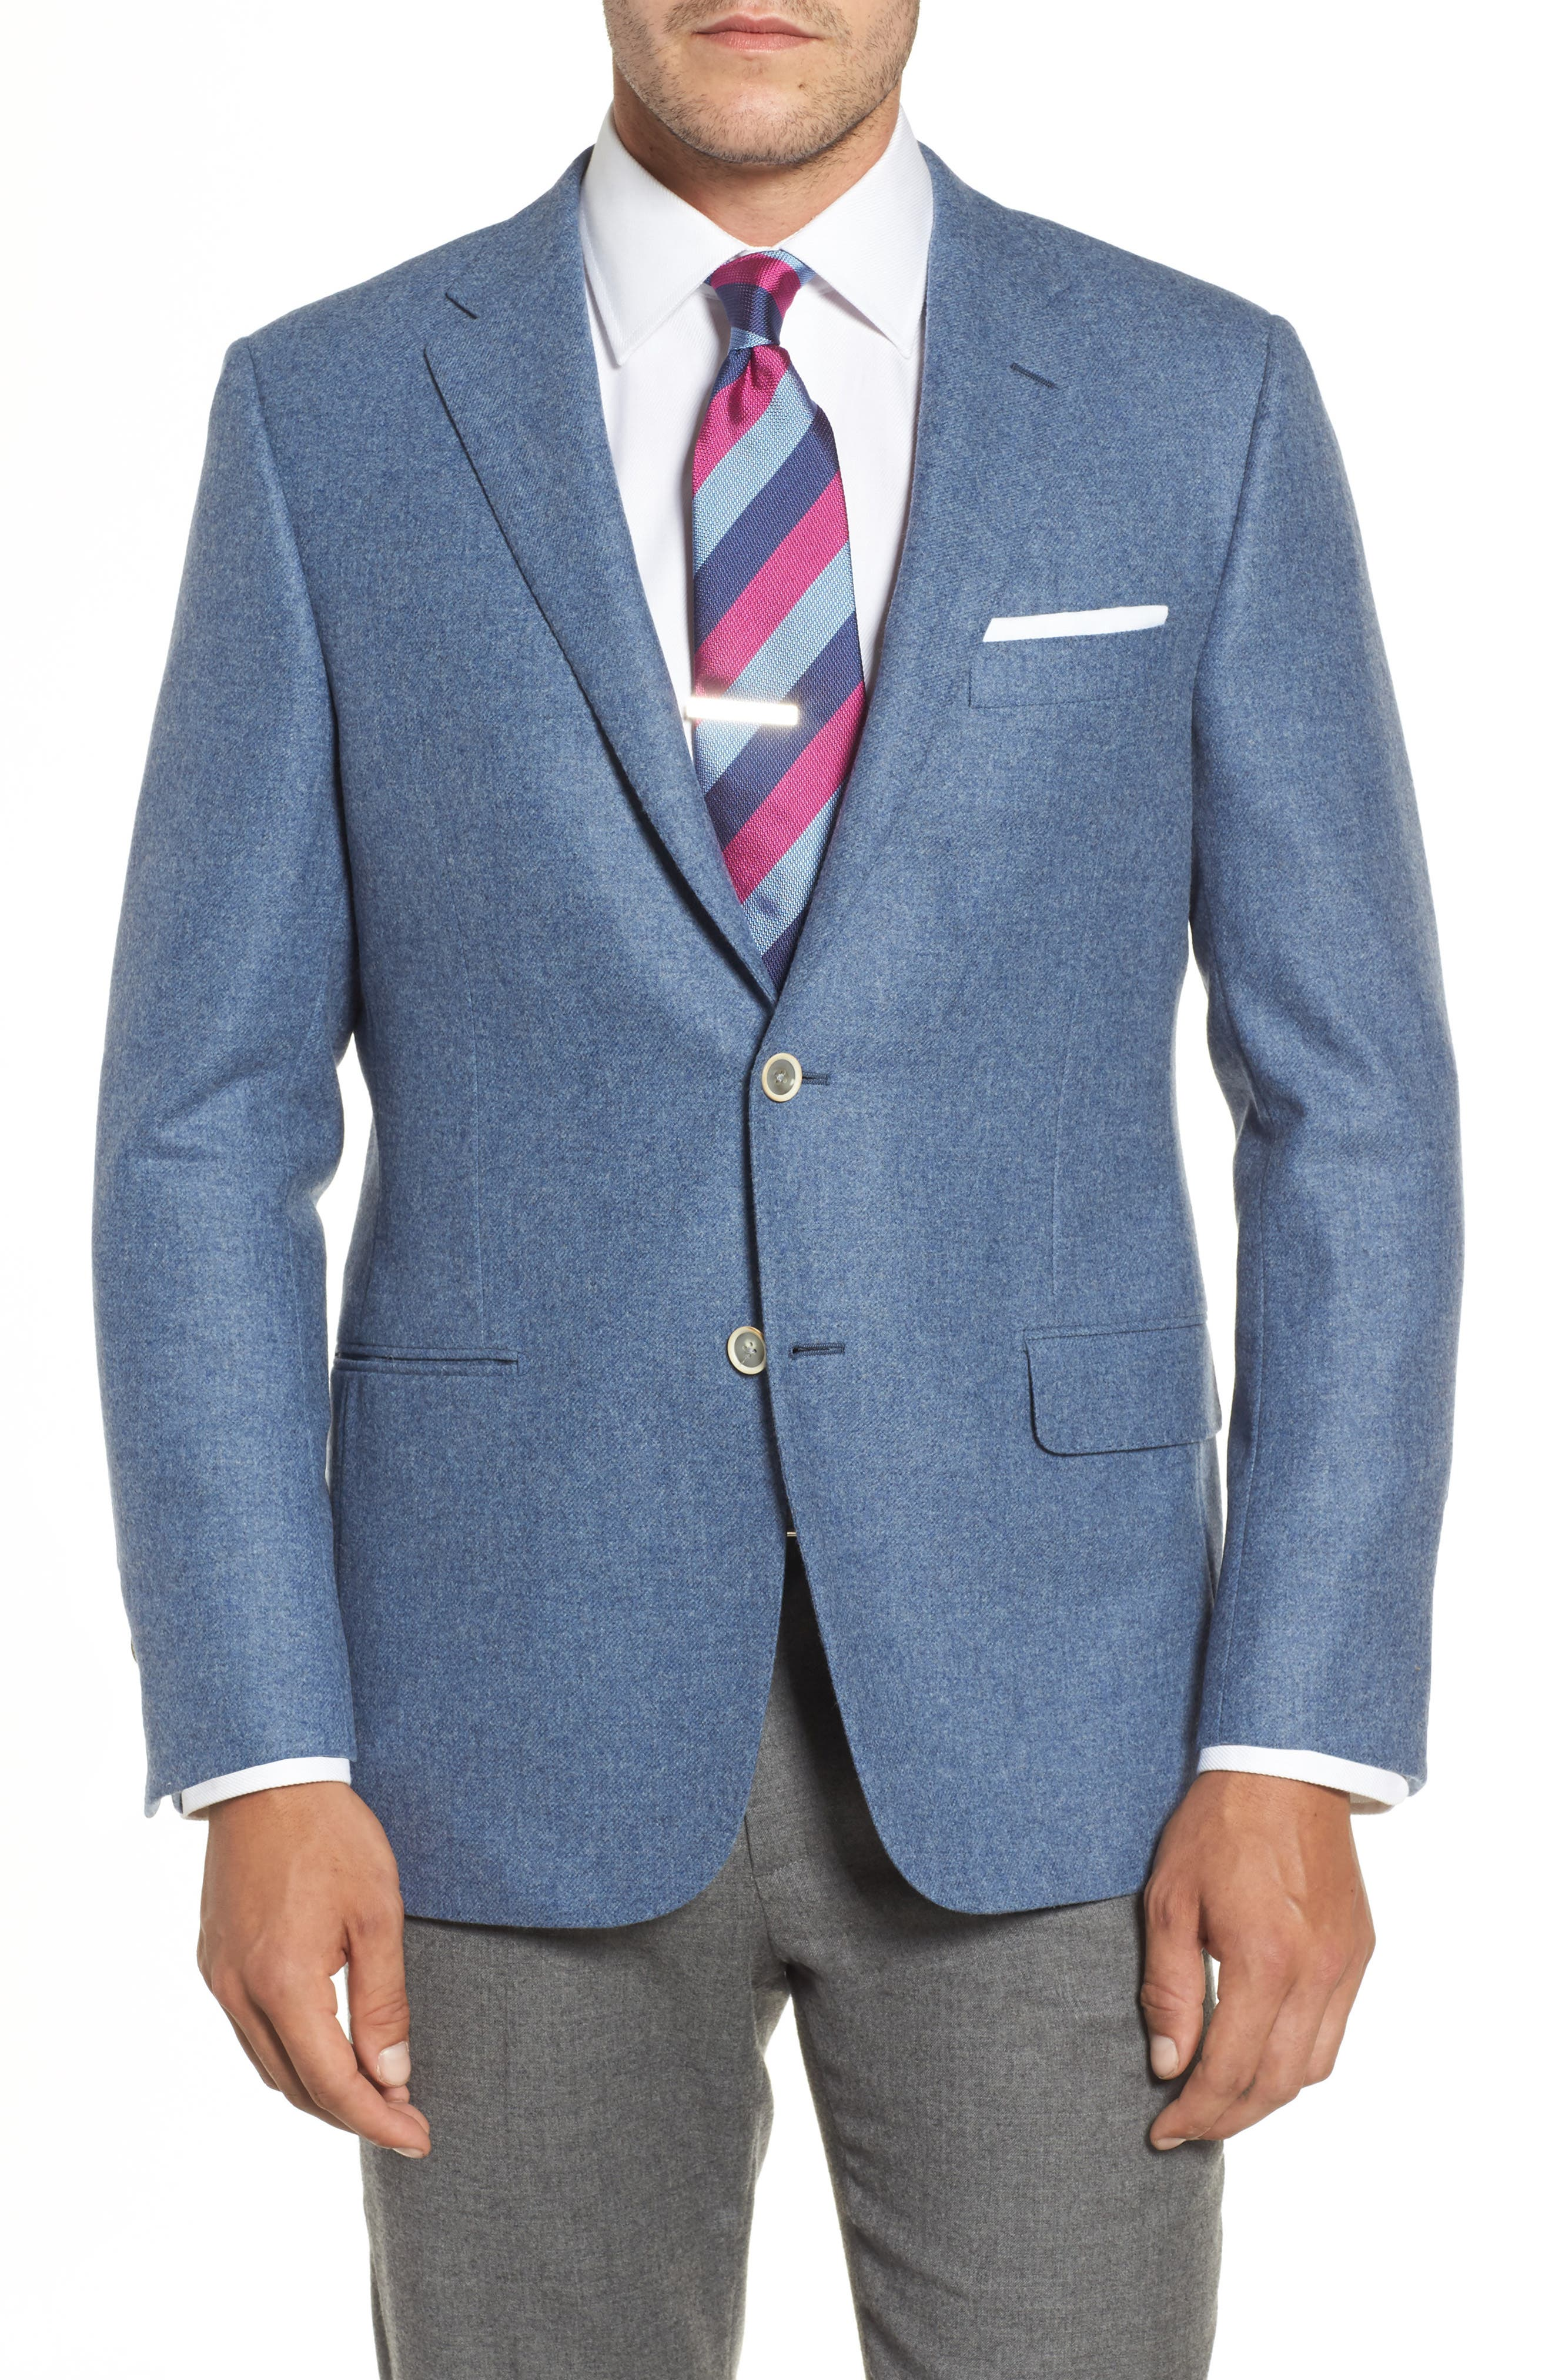 Beacon Classic Fit Wool & Cashmere Blazer,                         Main,                         color, 450